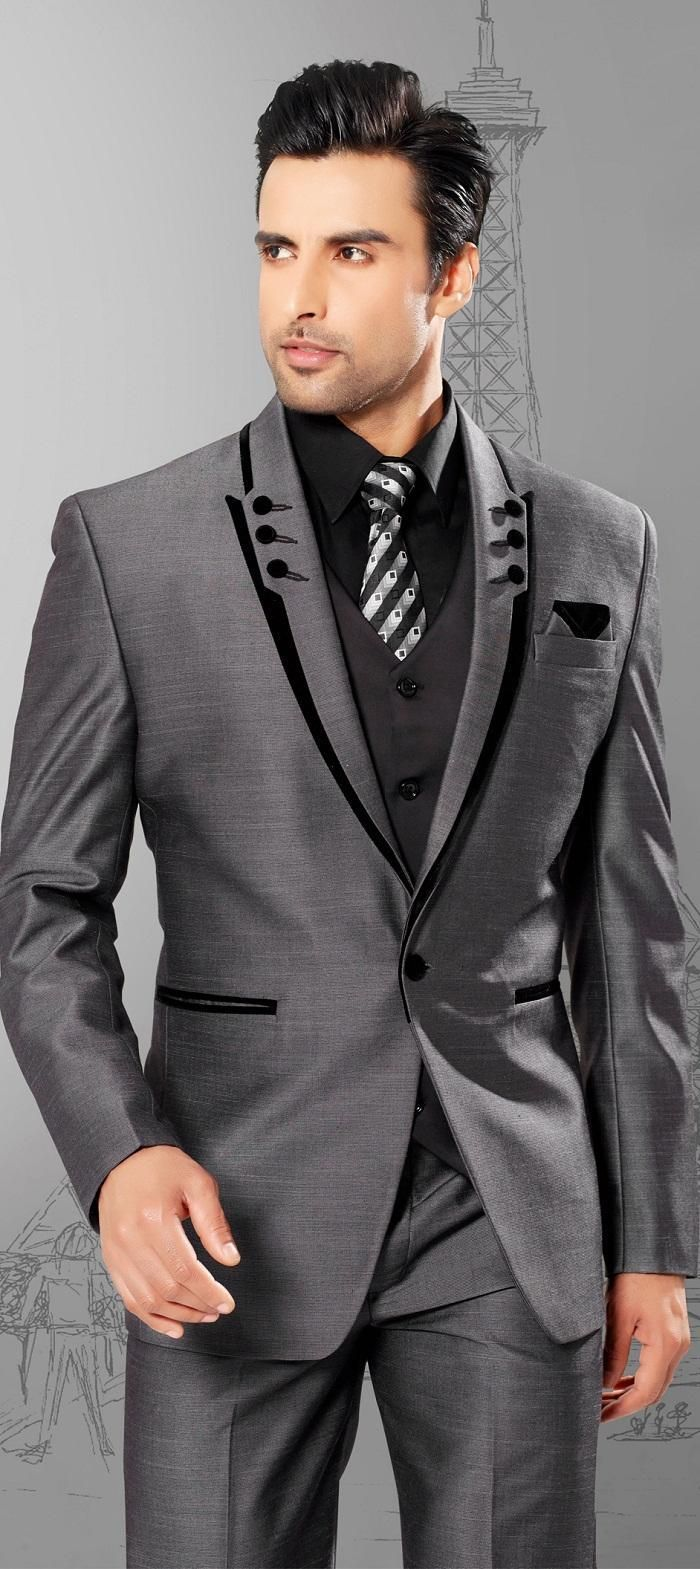 Full black tuxedo men suits slim fit peaked lapel tuxedos for Black tuxedo shirt for men